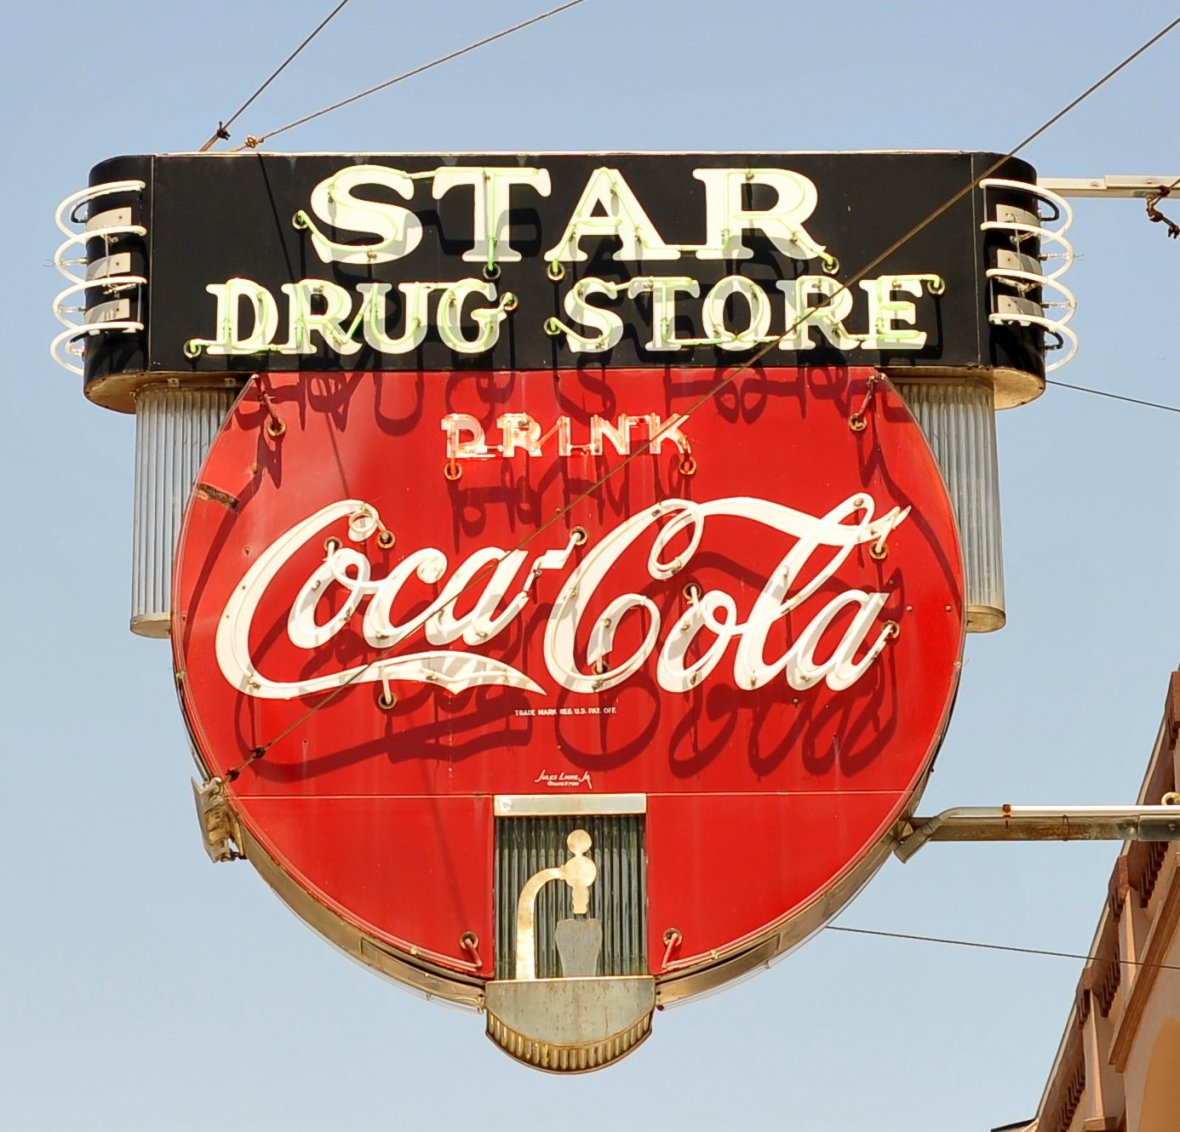 Star Drug Store - 510 23rd Street, Galveston, Texas U.S.A. - August 17, 2013